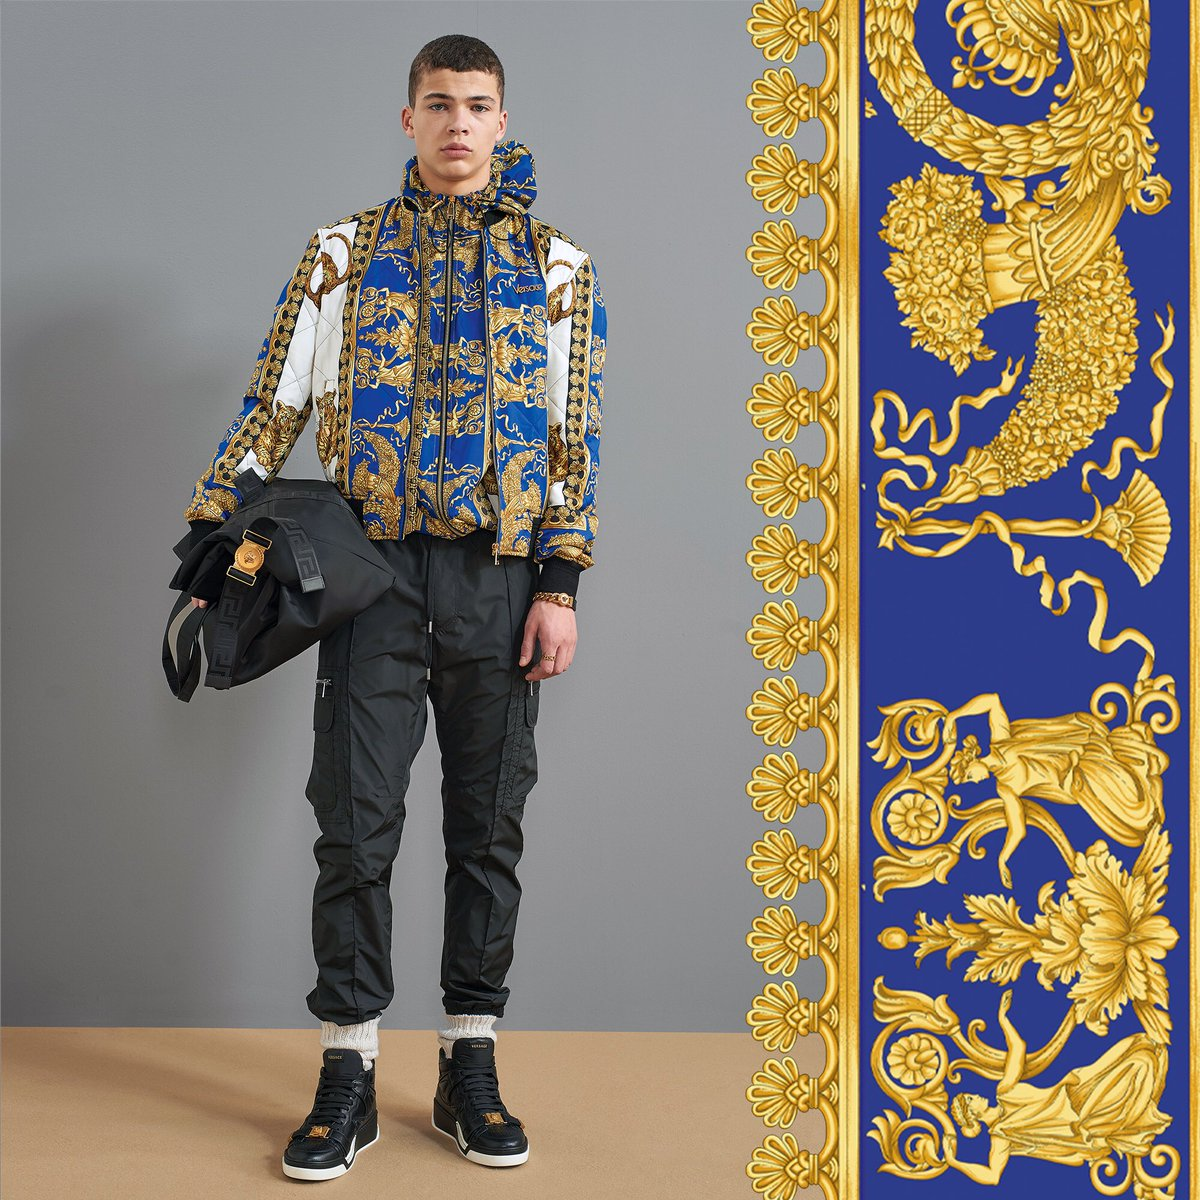 Loco for Barocco - the Signature Dea print features the most iconic Versace motifs.  Find the #VersacePreFall18 men's collection now: https://t.co/NoSI7cBtKP